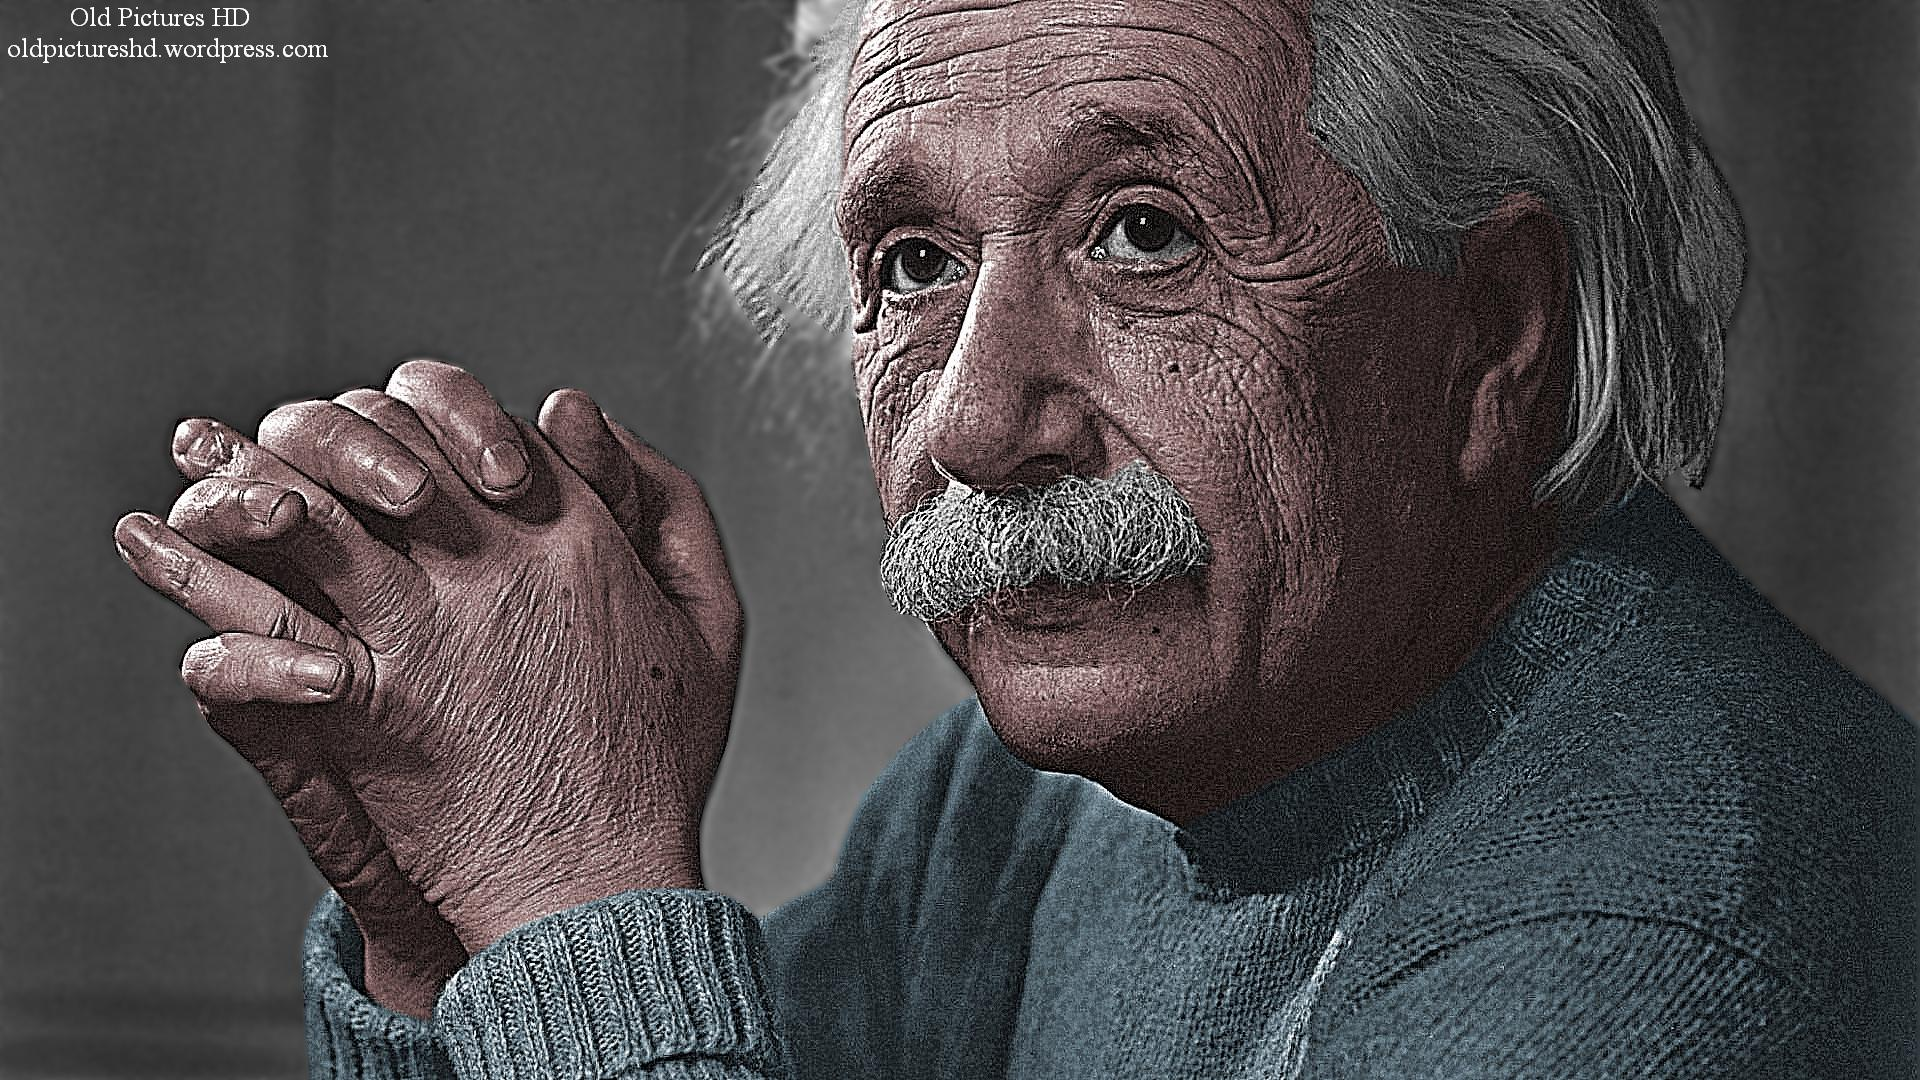 Albert einstein hd old pictures hd - Albert einstein hd images ...